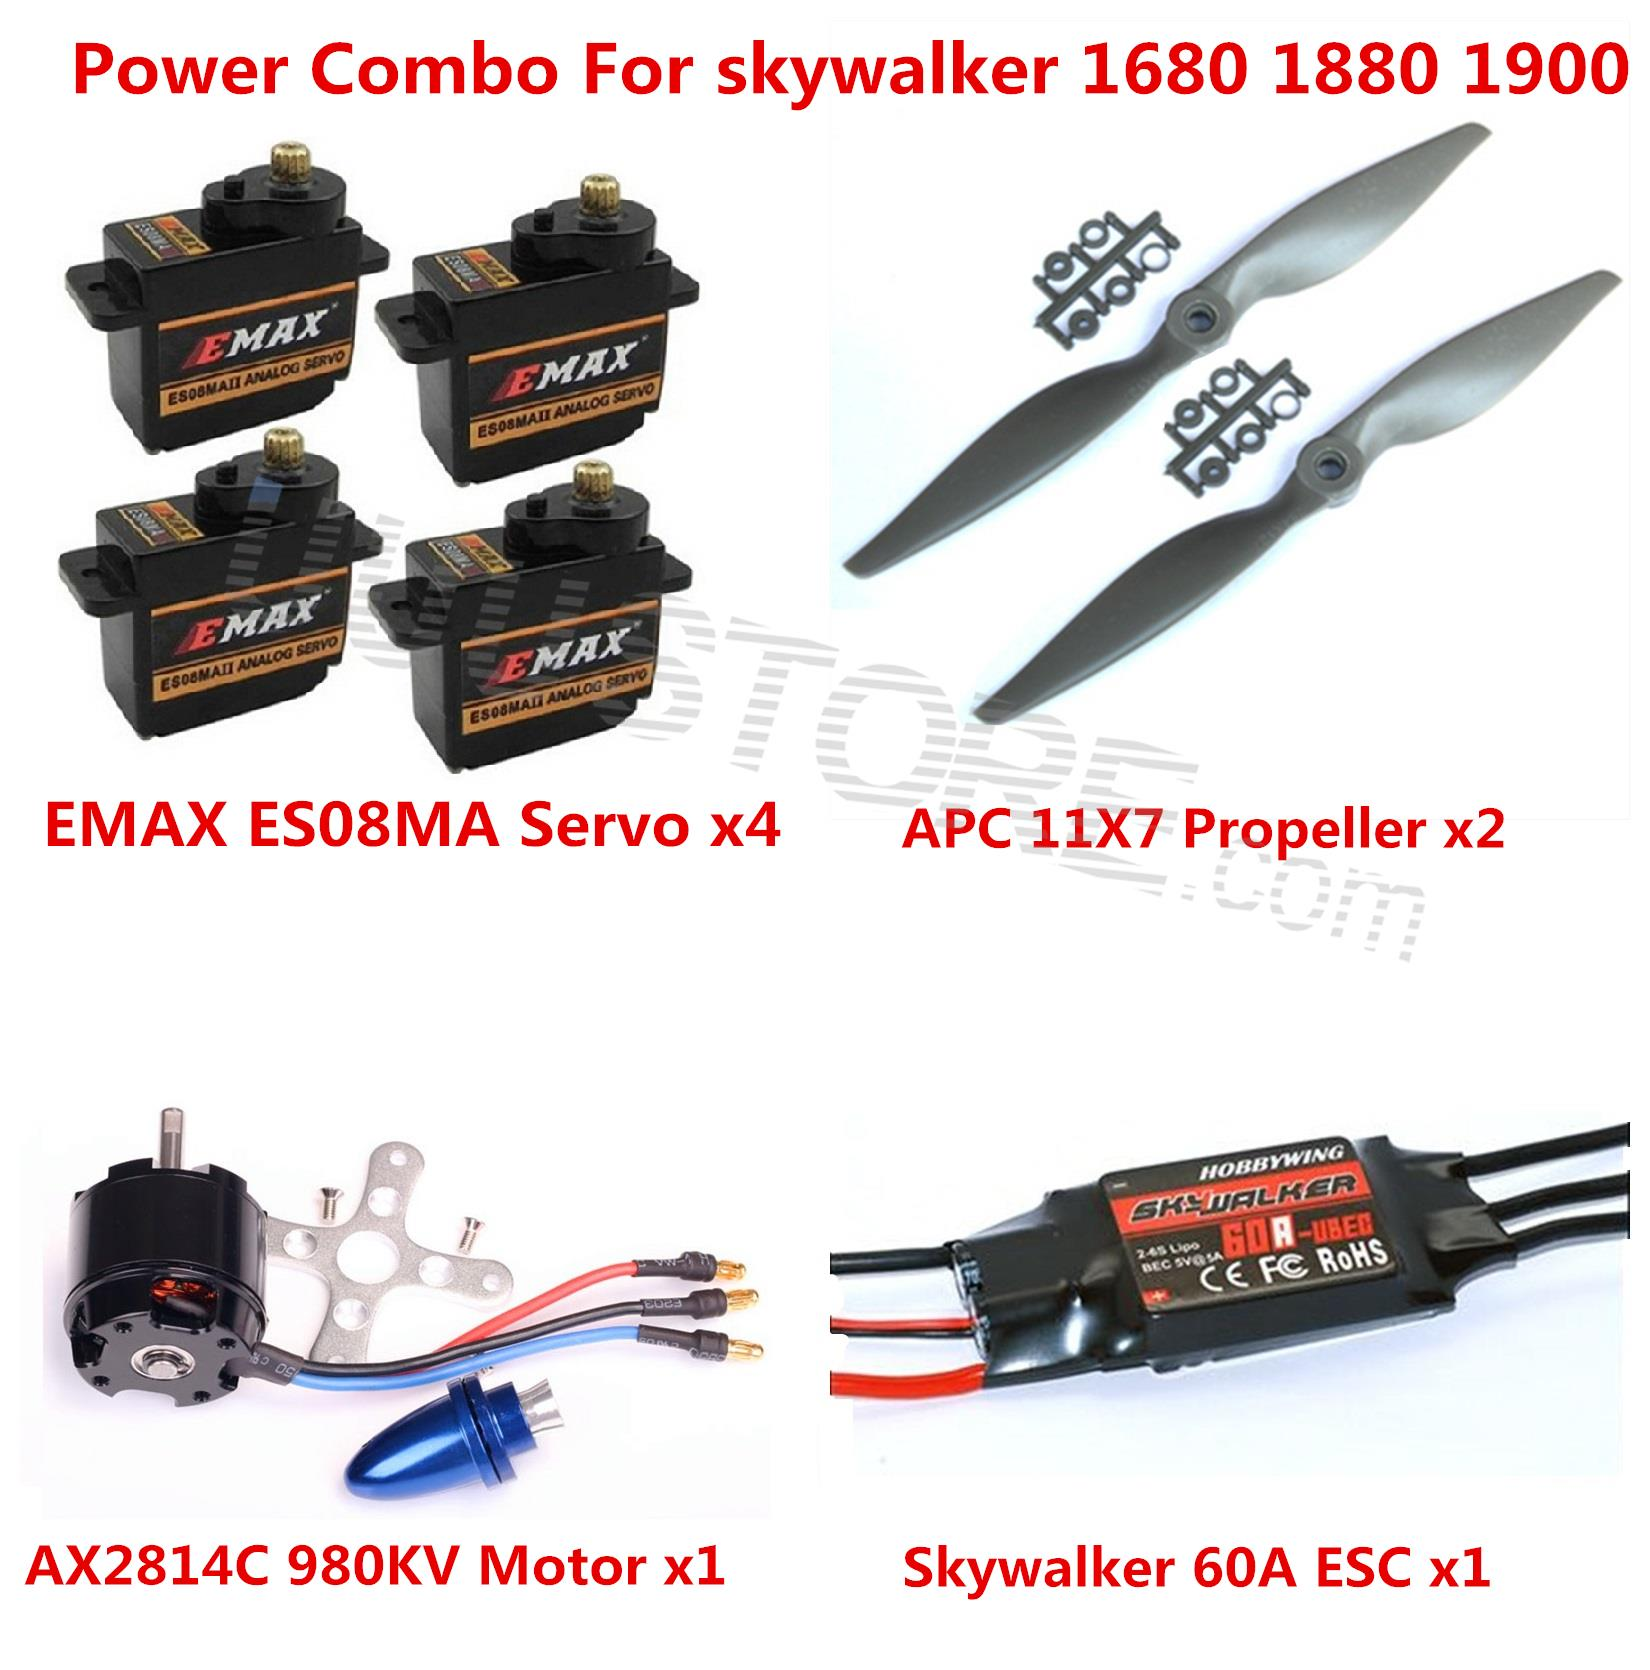 Power Combo Kit For Skywalker 1680 1880 1900 EPO RC Airplane Motor ESC Props and Servos пульт webbers rc crn3 combo for nikon